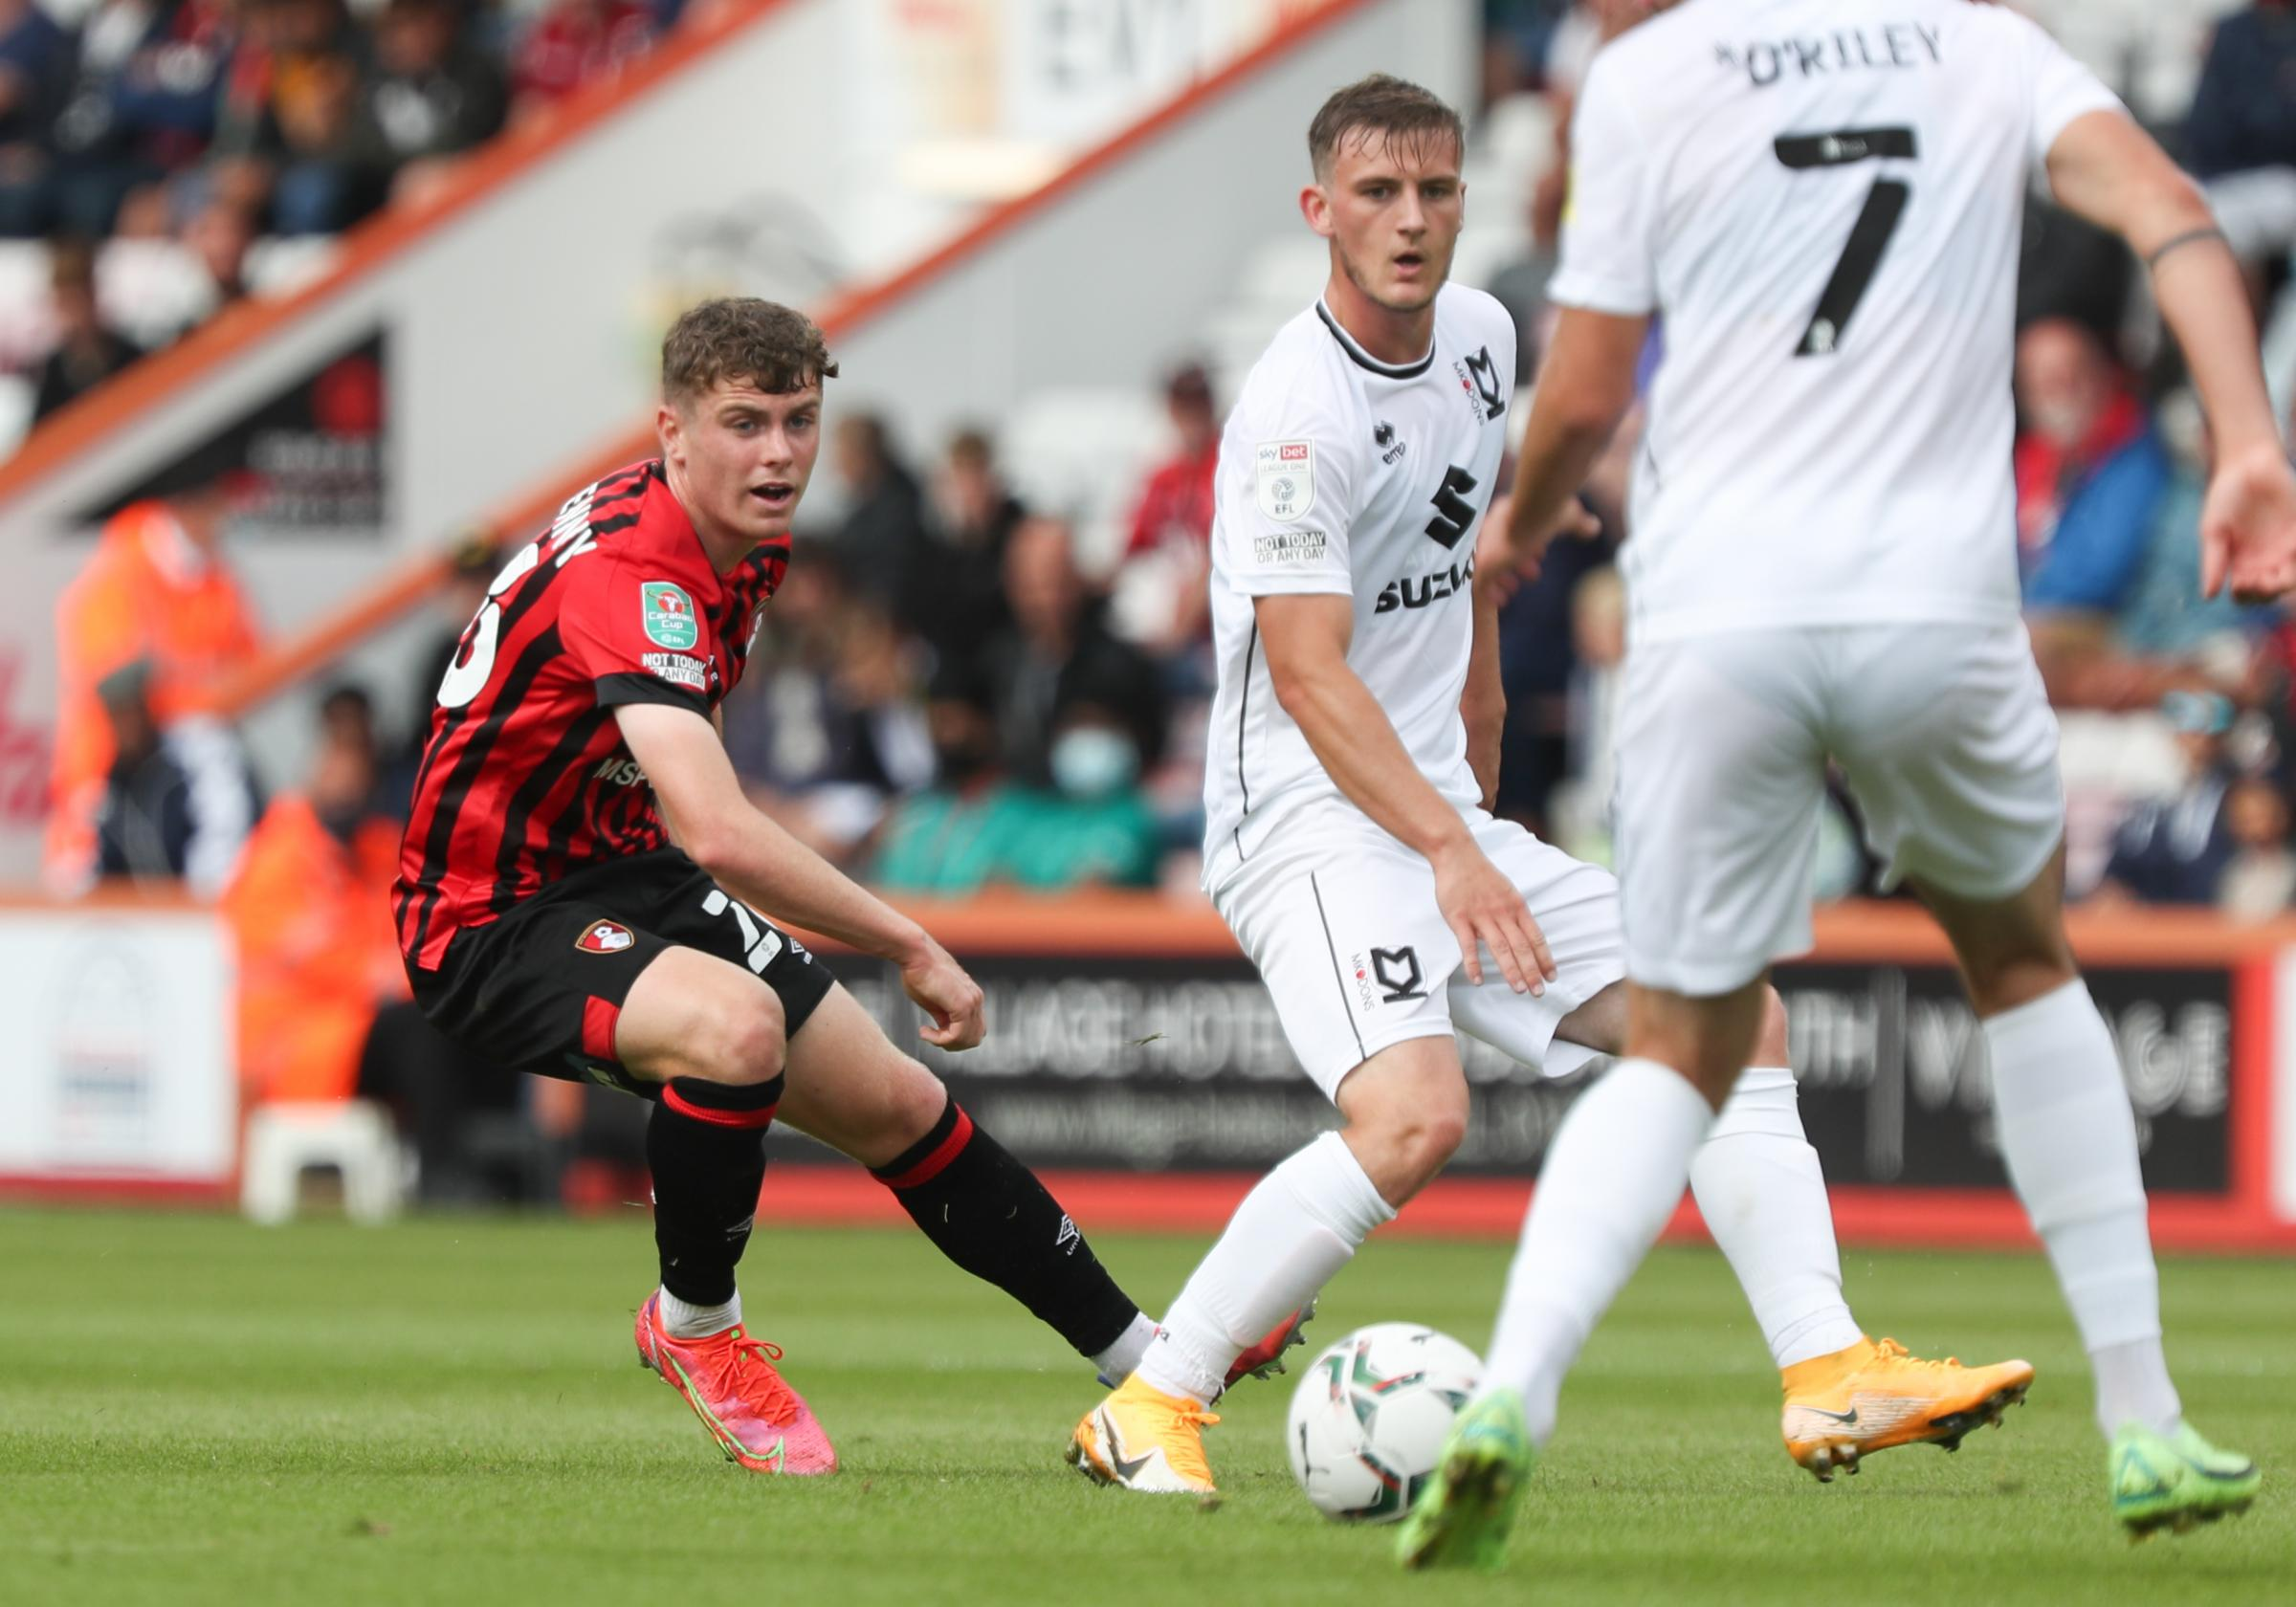 Gavin Kilkenny: I have 'learnt loads' from Lewis Cook